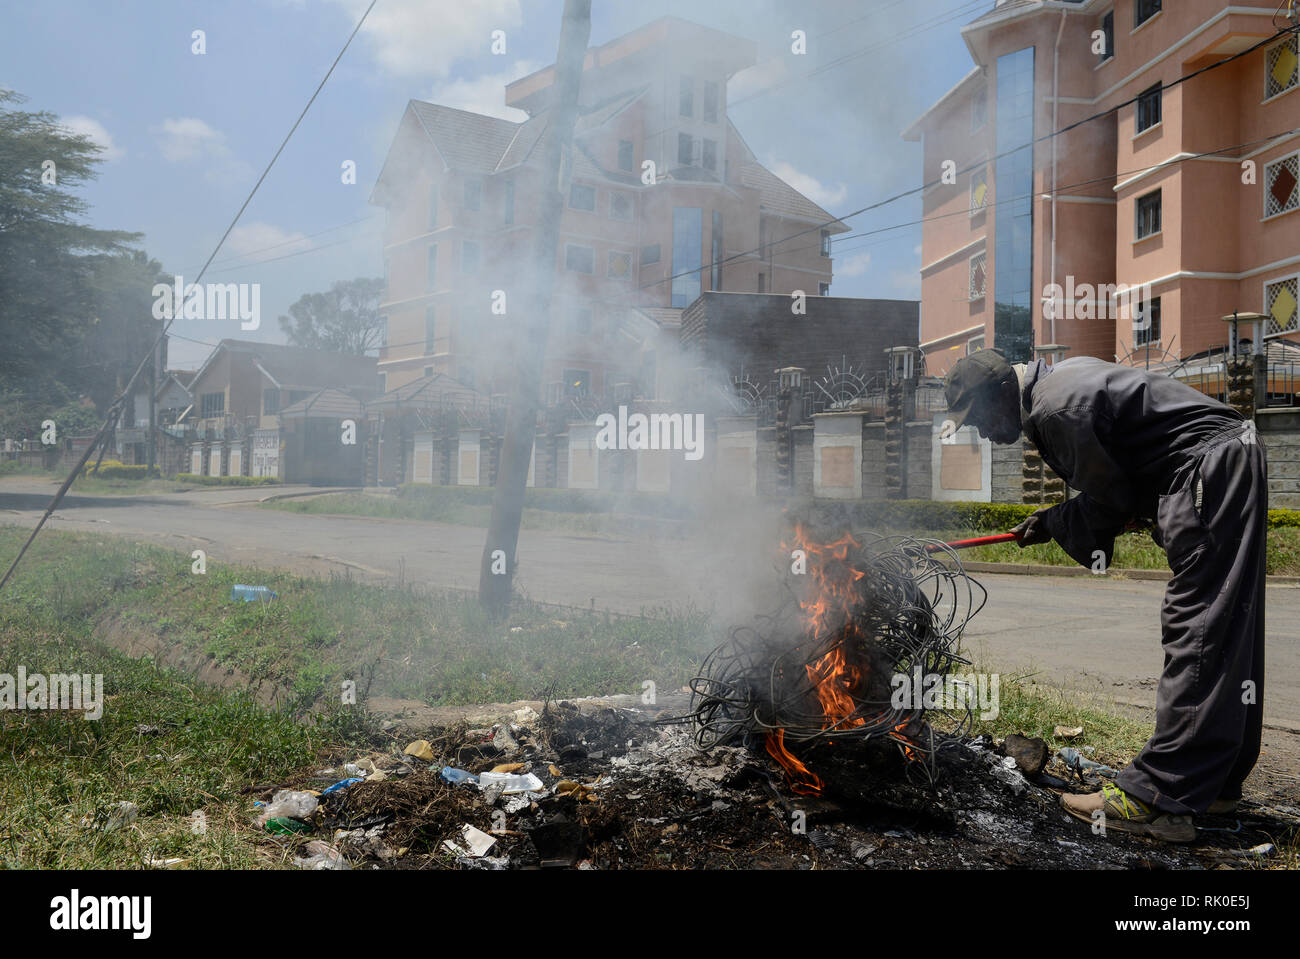 KENYA, Nairobi, city centre, waste picker burns garbage and cable insulation of electric cable on the road to collect copper - Stock Image